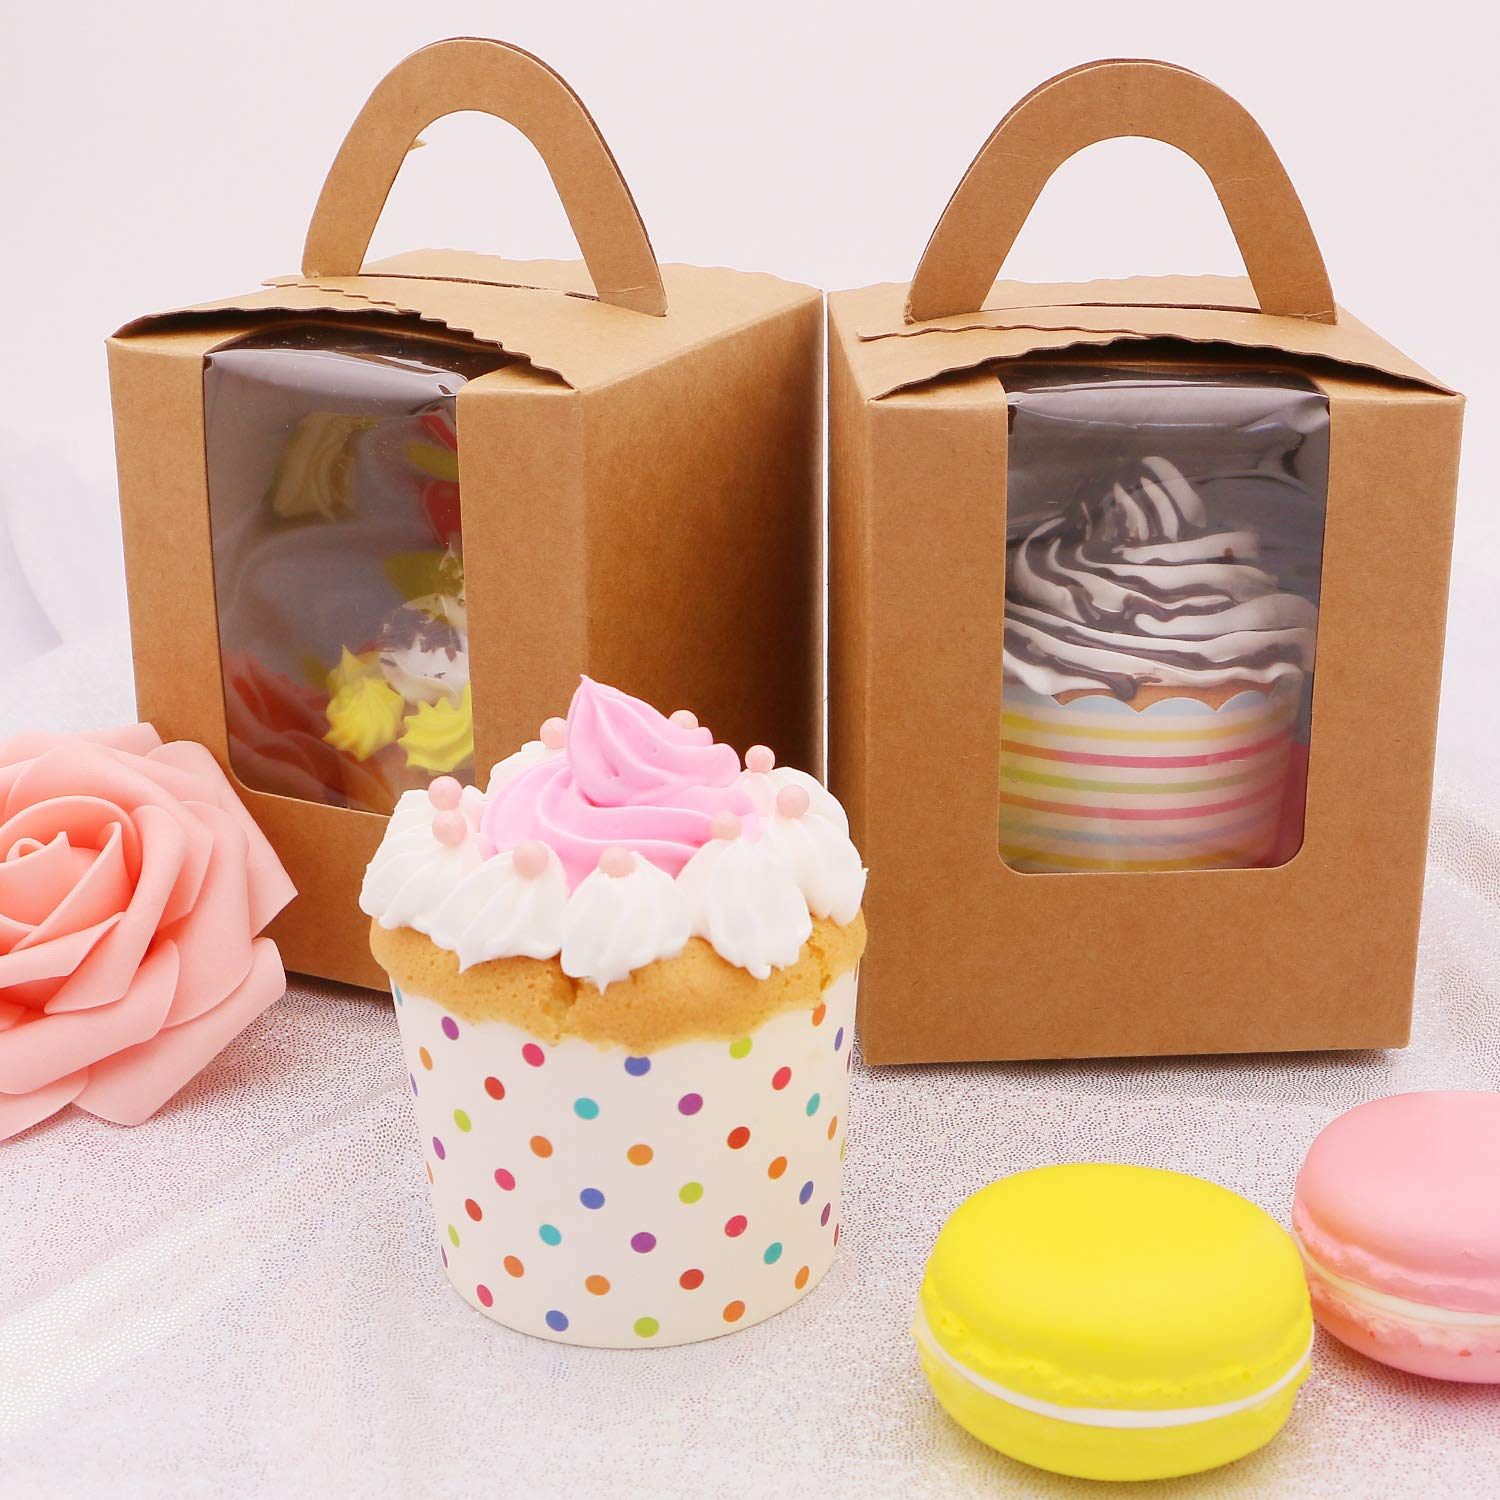 Single Cupcake Boxes with Insert Window Handle, Portable Kraft Paper Cupcake Containers Carriers for Valentine's Day Wedding Bakery Parties, Candy Boxes, 50 Pack